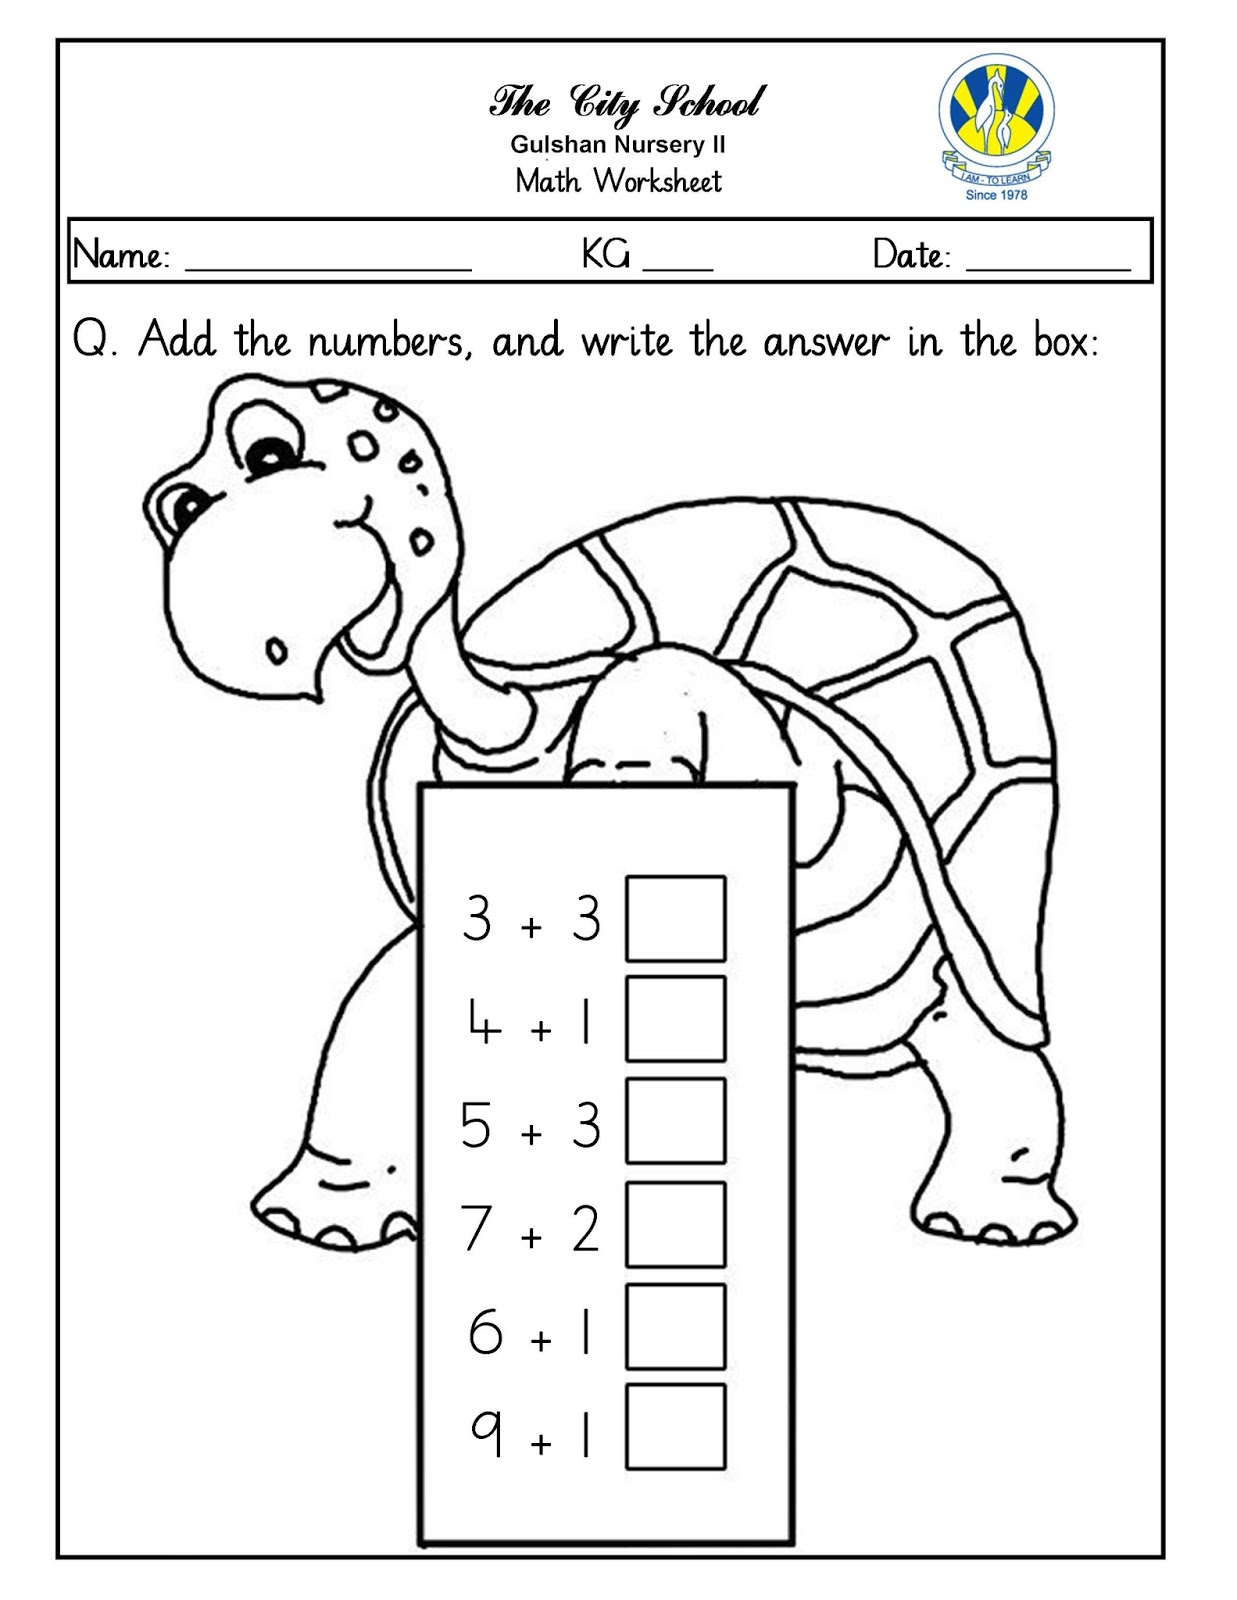 Sr Gulshan The City Nursery Ii Urdu English Math Worksheets